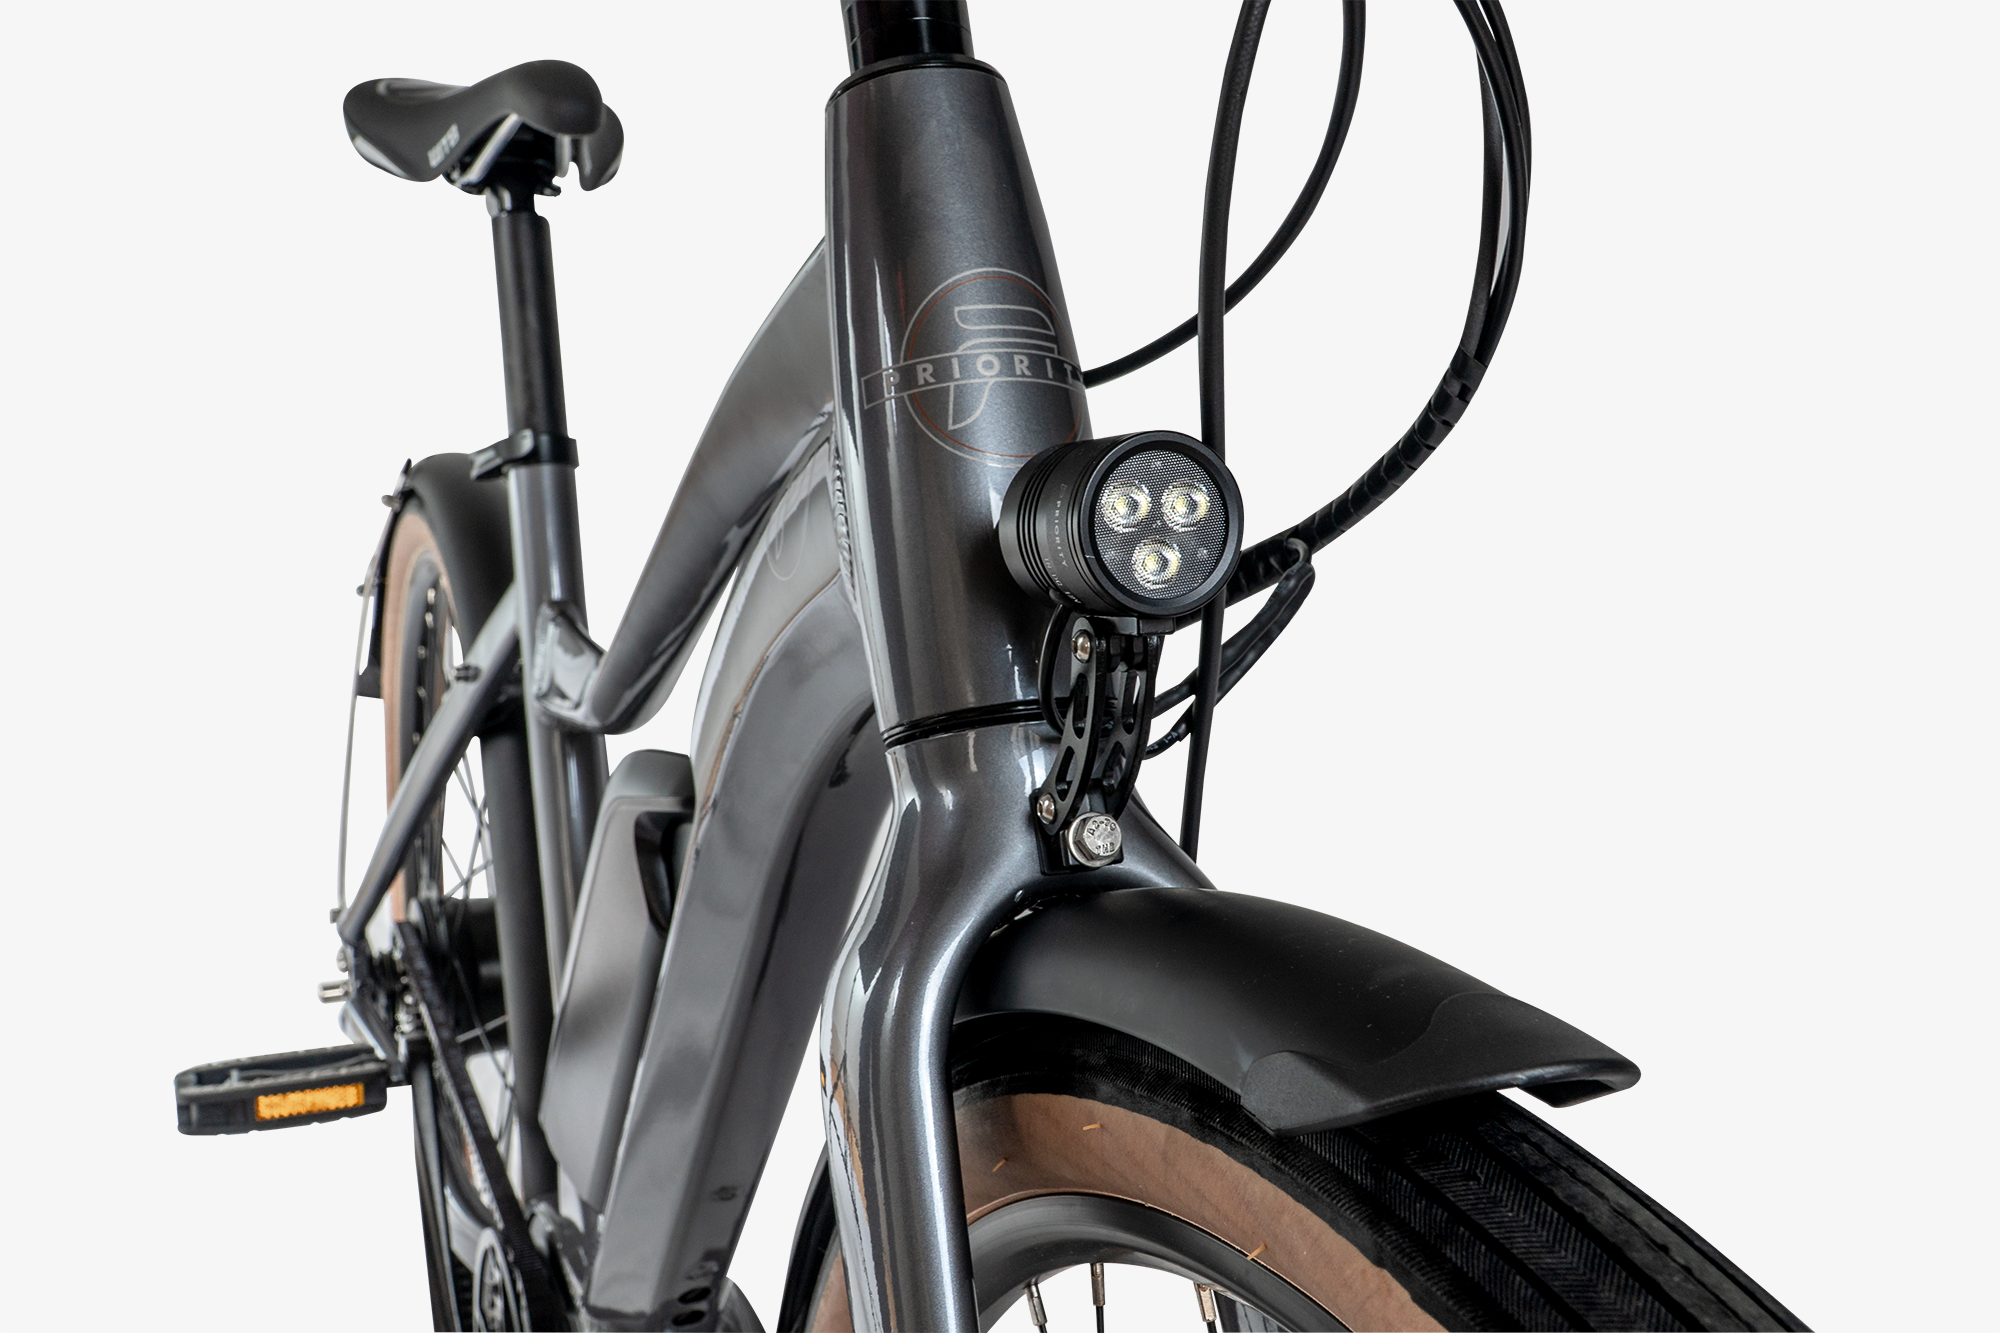 Aluminum frame and integrated front light on the Priority Embark electric bike